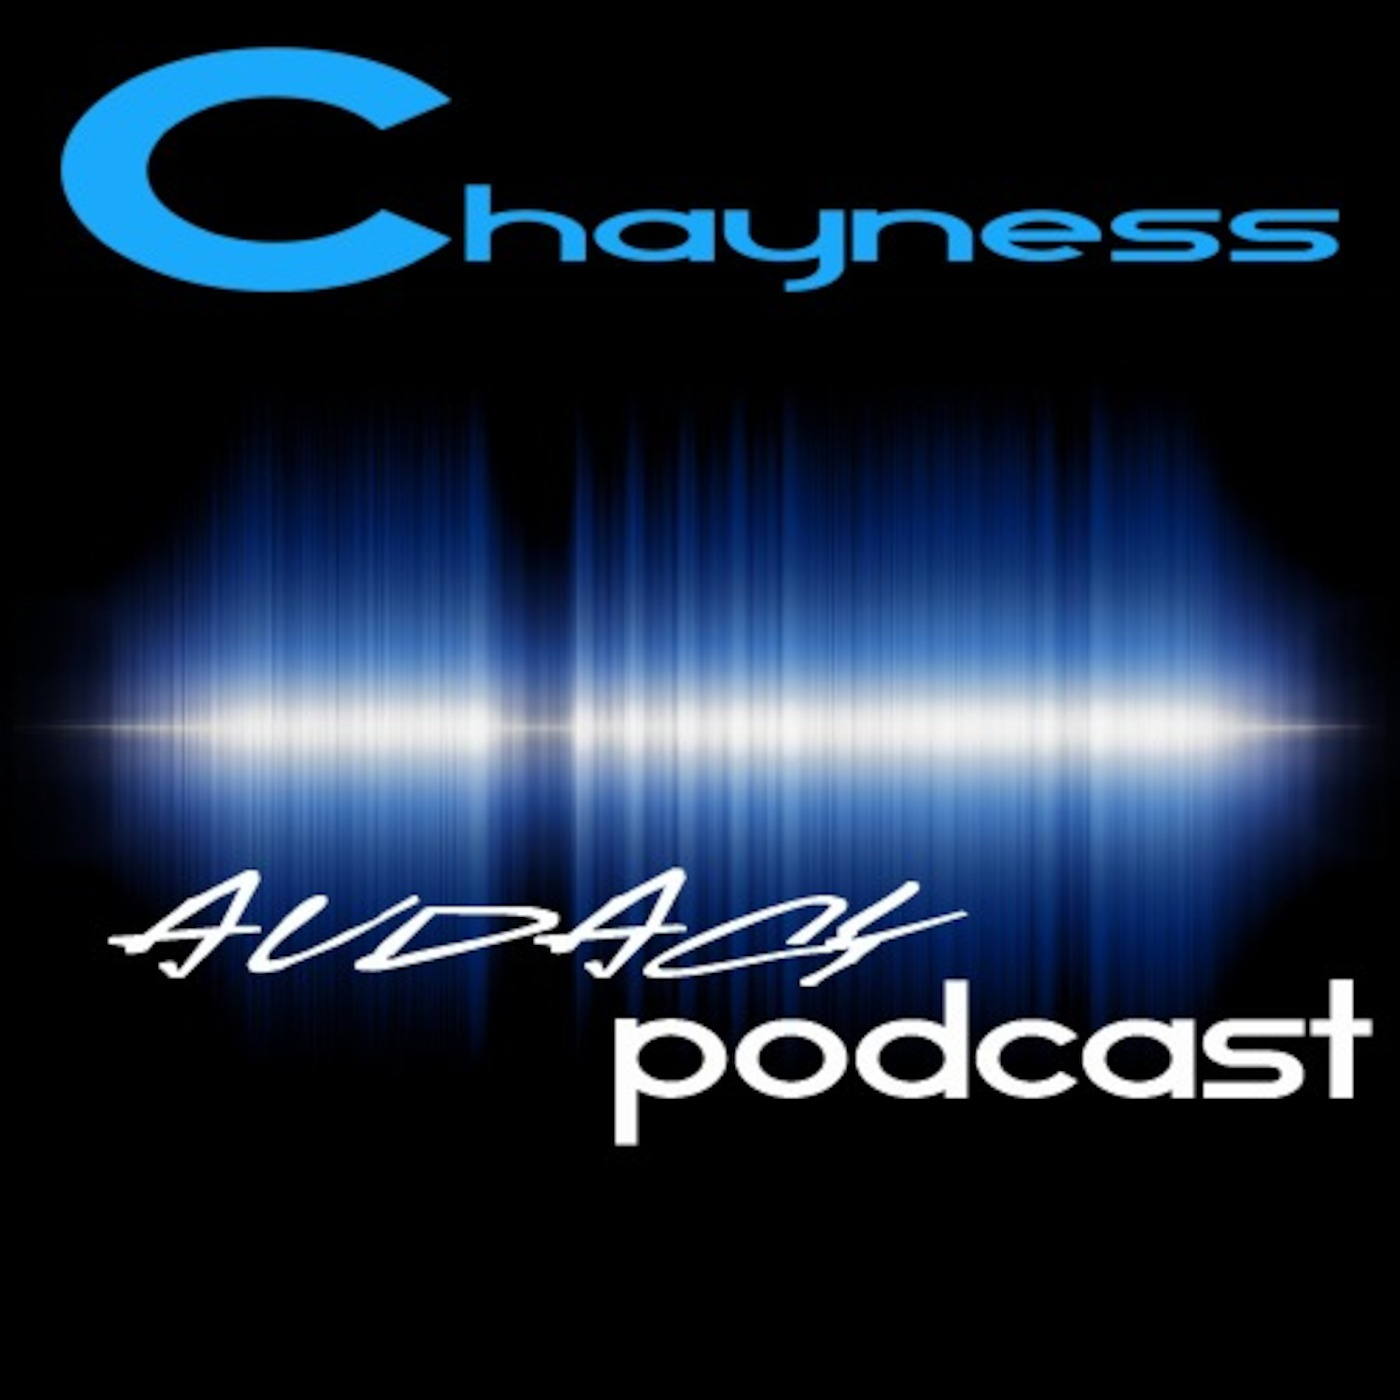 Chayness - Audacy Podcast